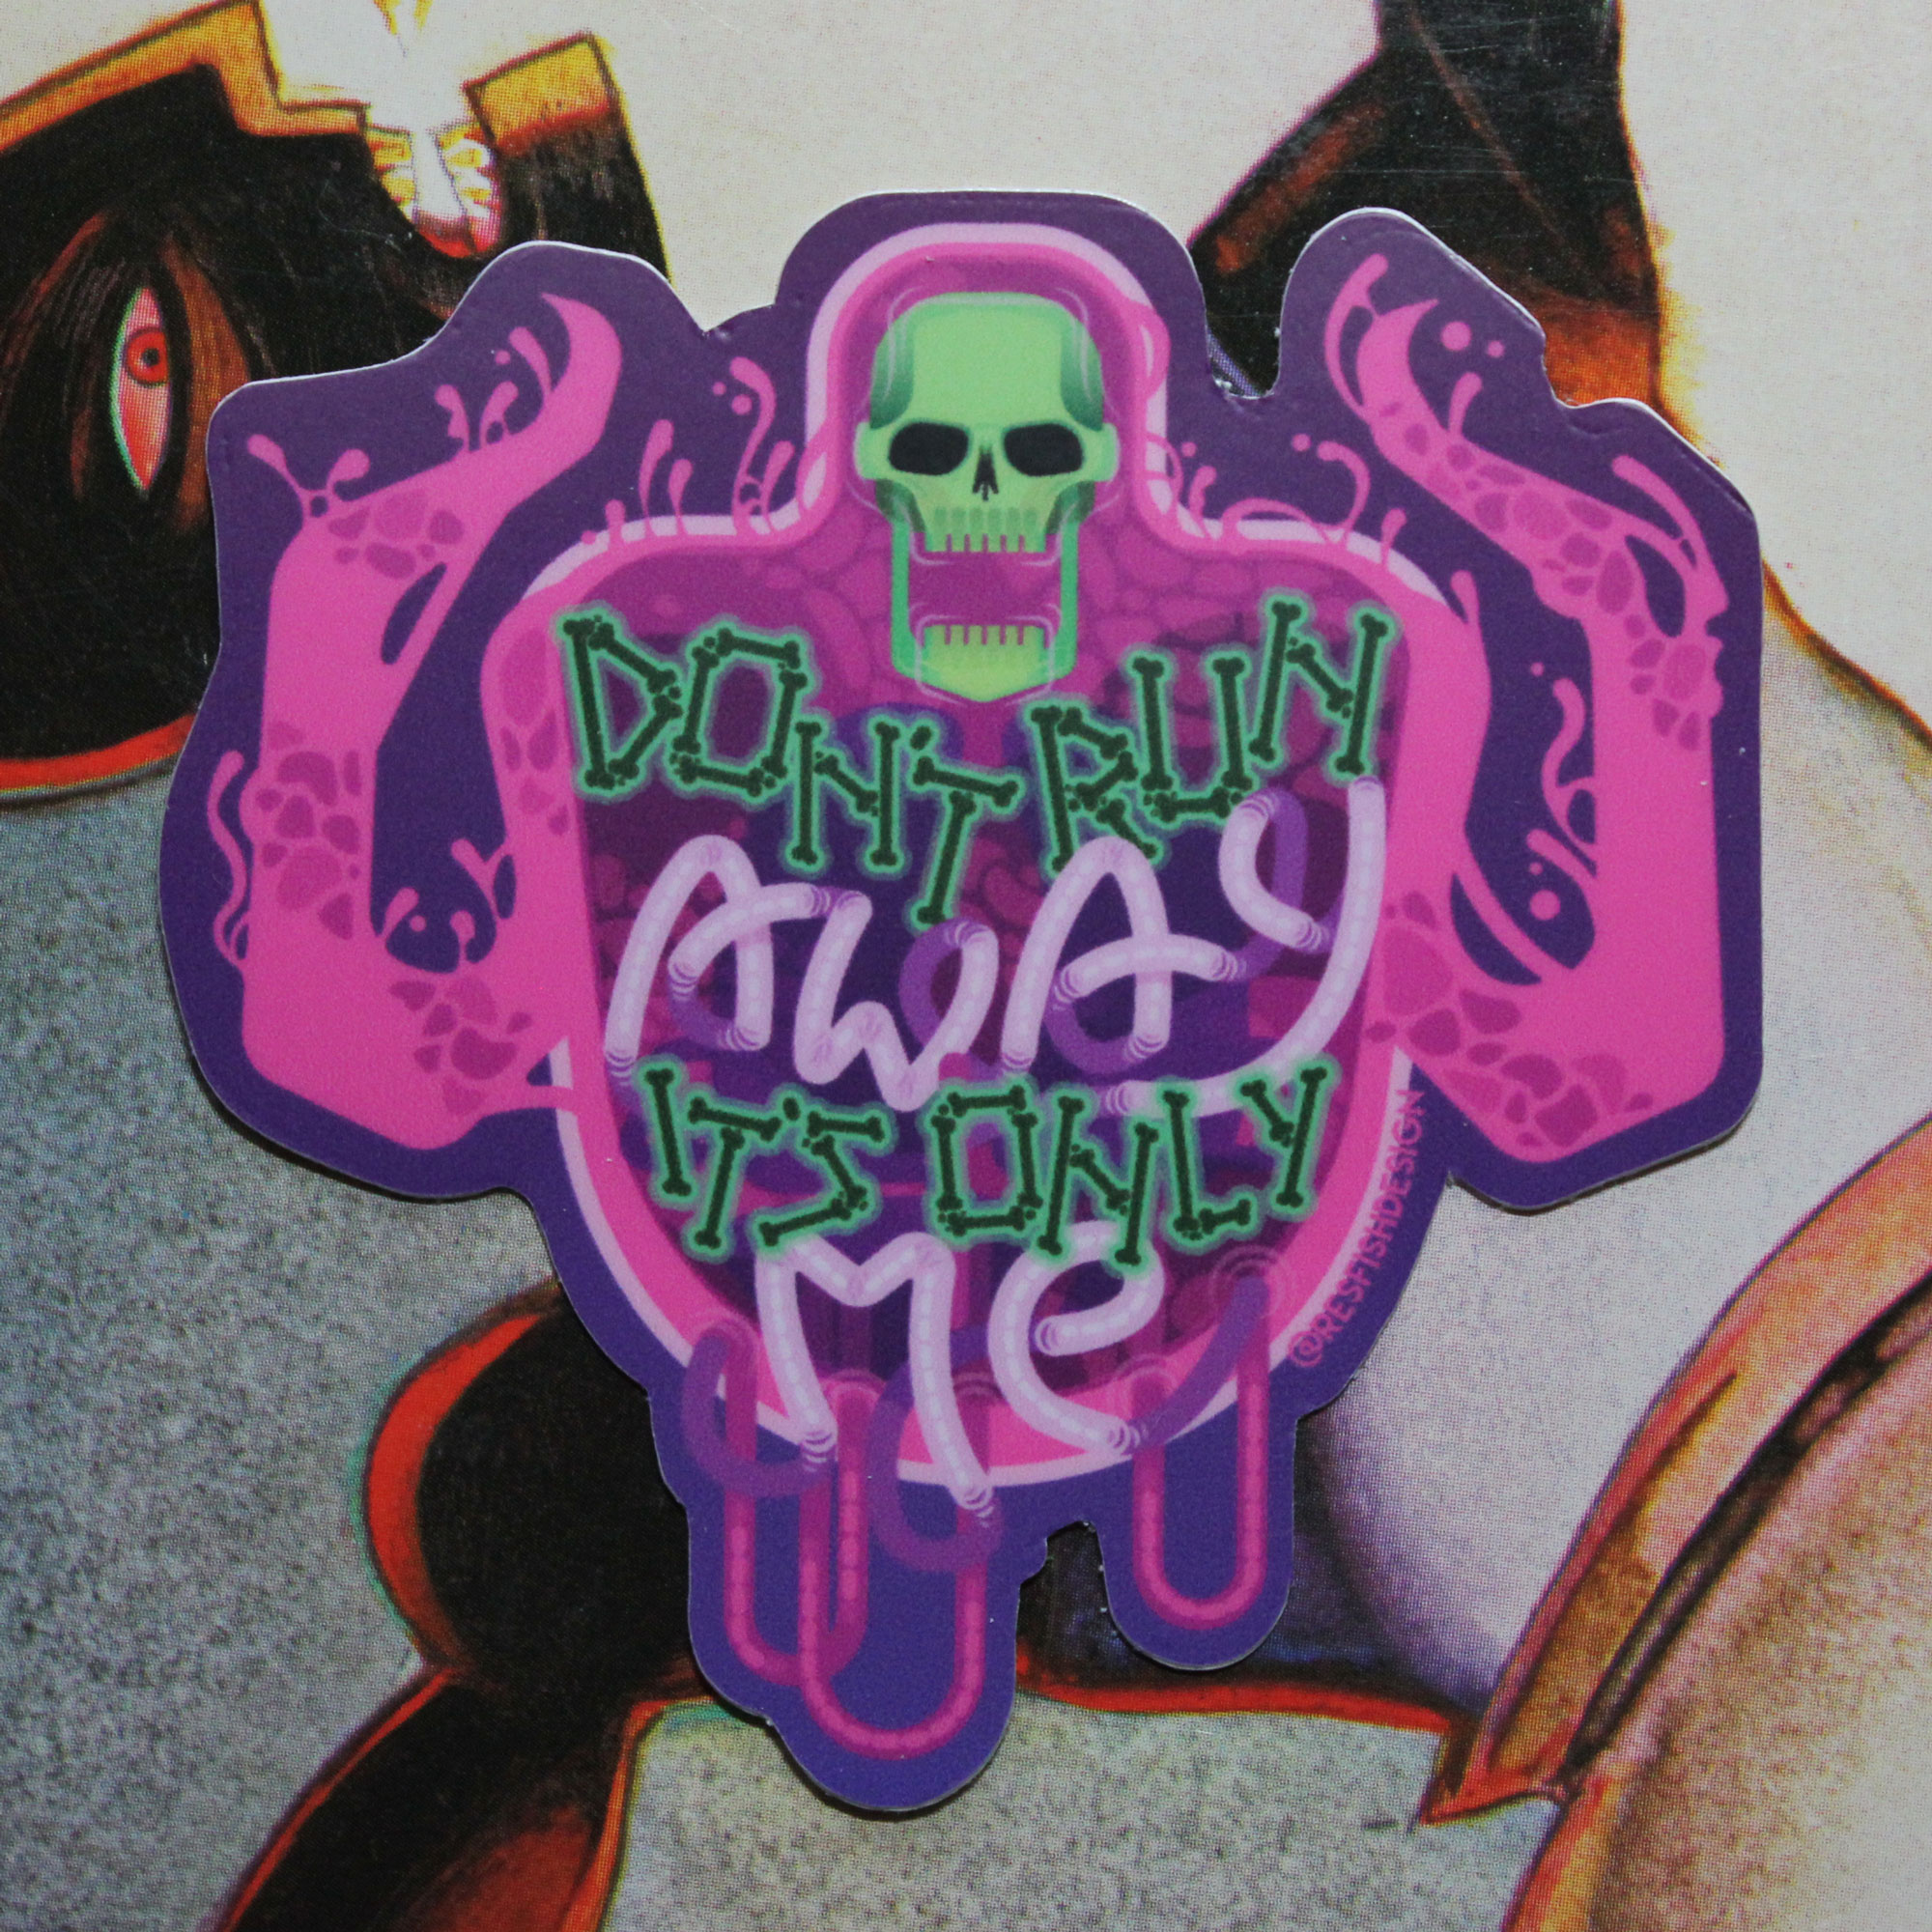 Don't Run Away sticker design